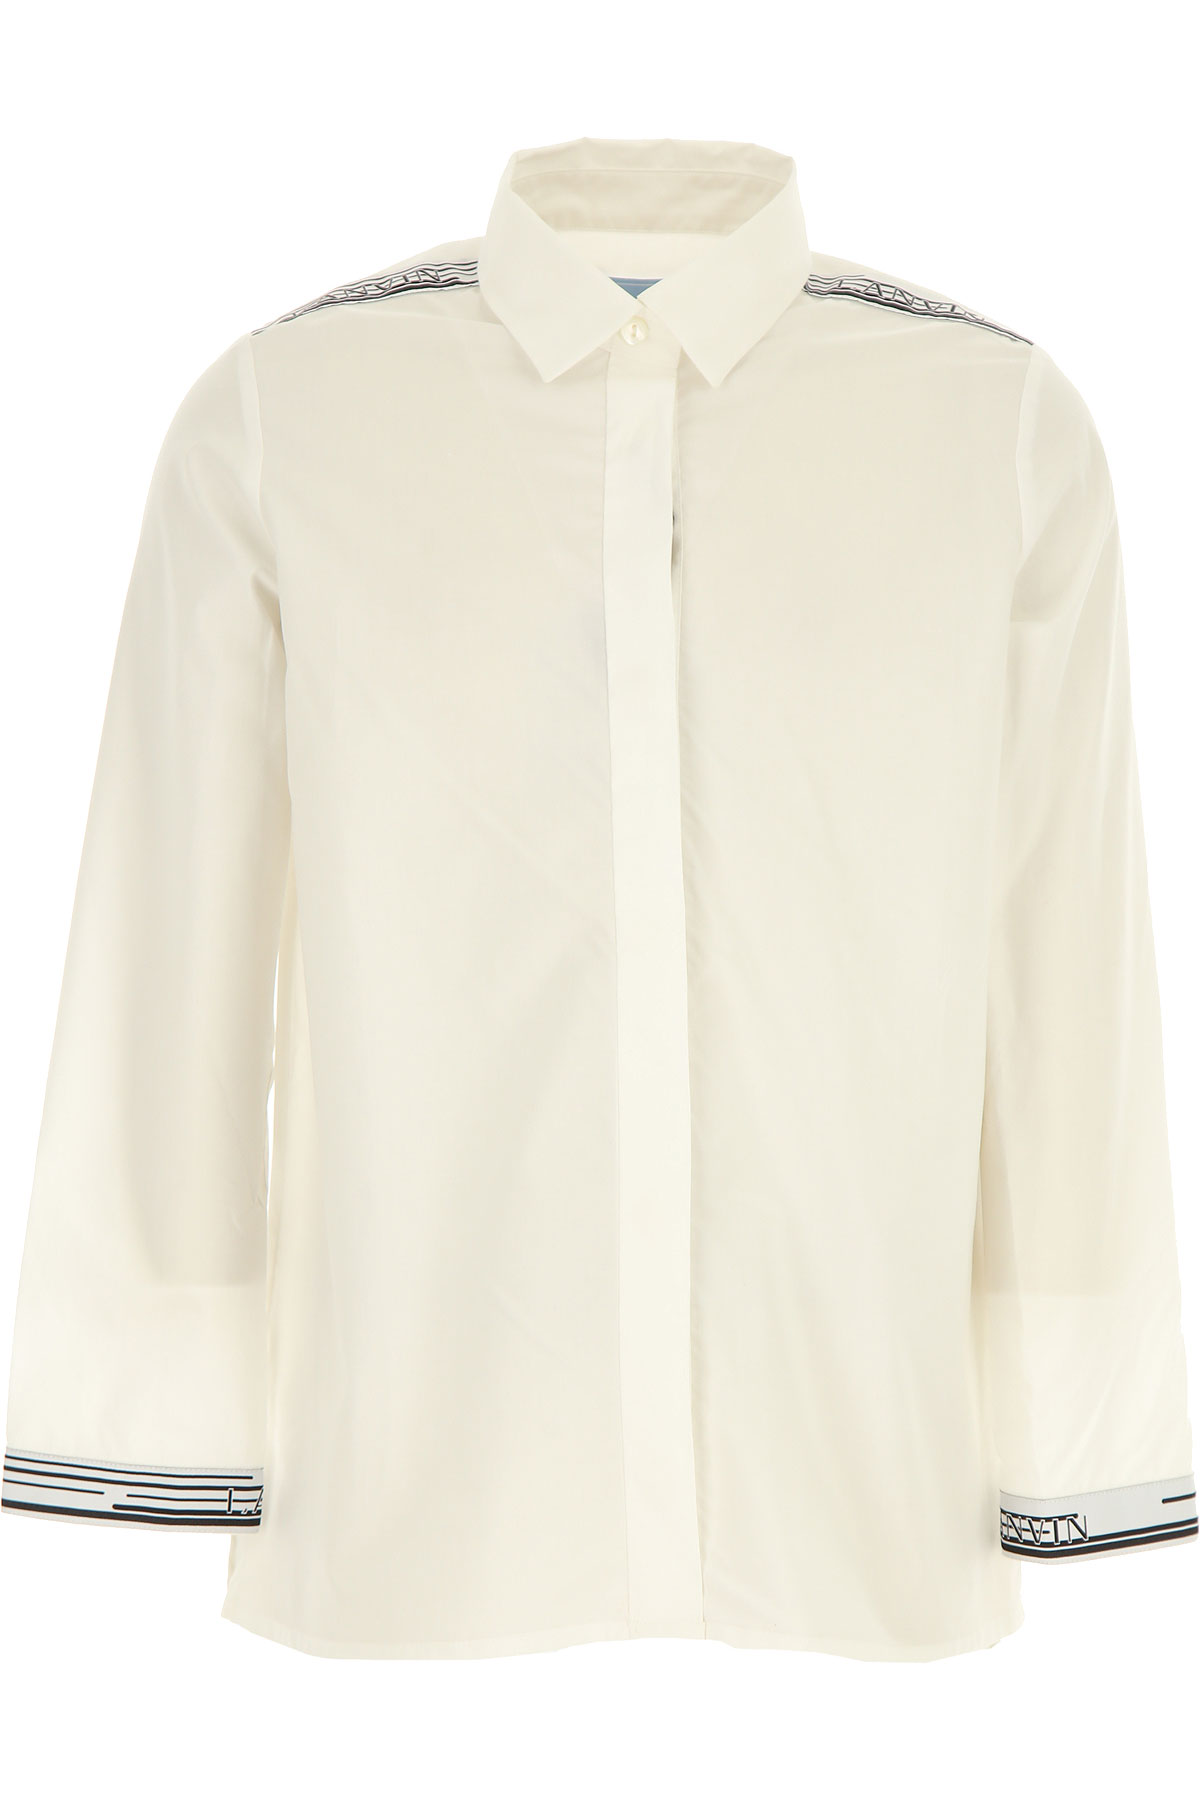 Lanvin Kids Shirts for Girls On Sale, White, Cotton, 2019, 10Y 12Y 14Y 8Y